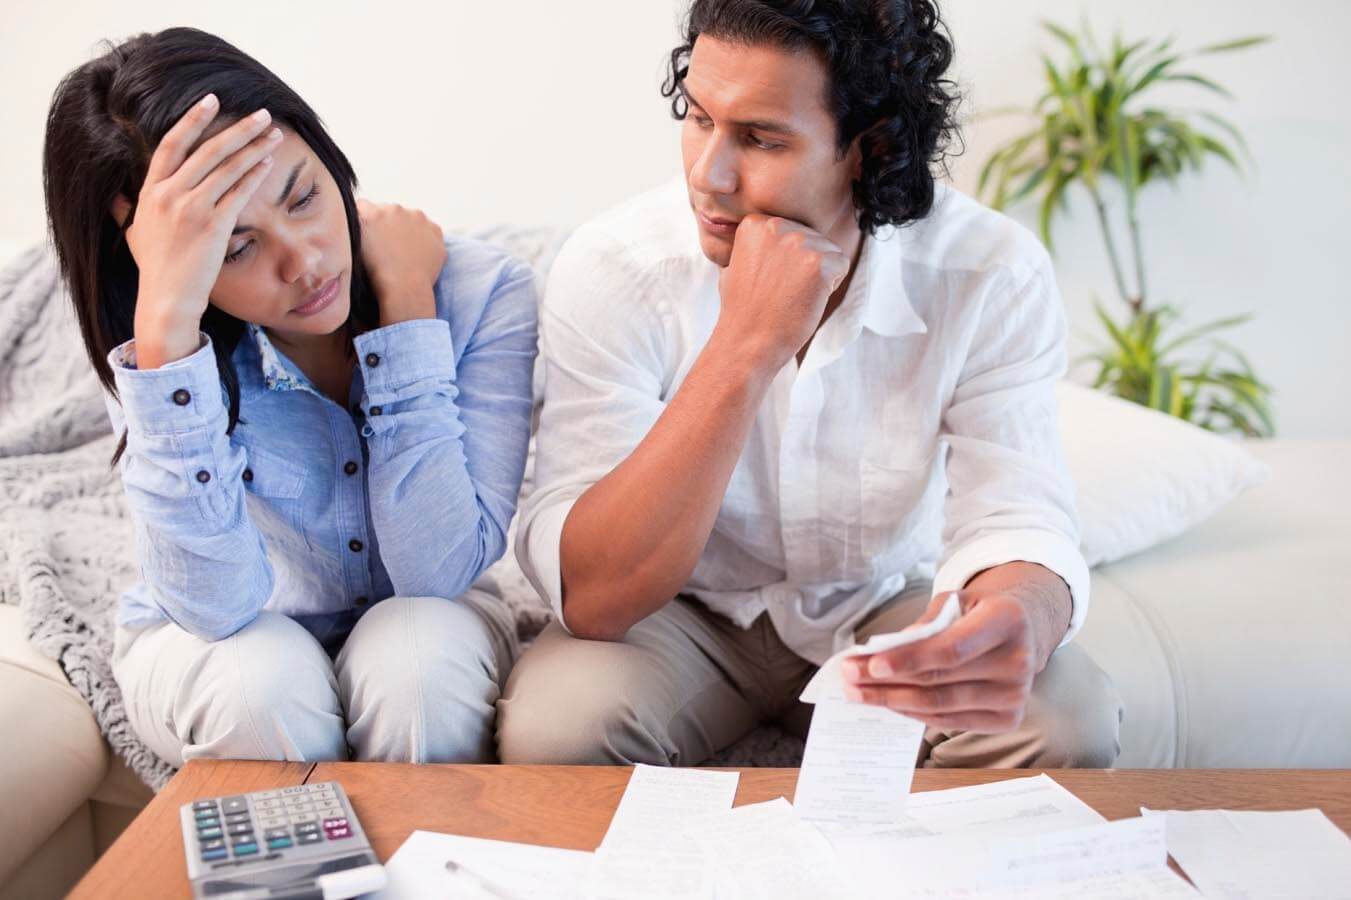 Financial Concerns Overwhelming for Many Americans